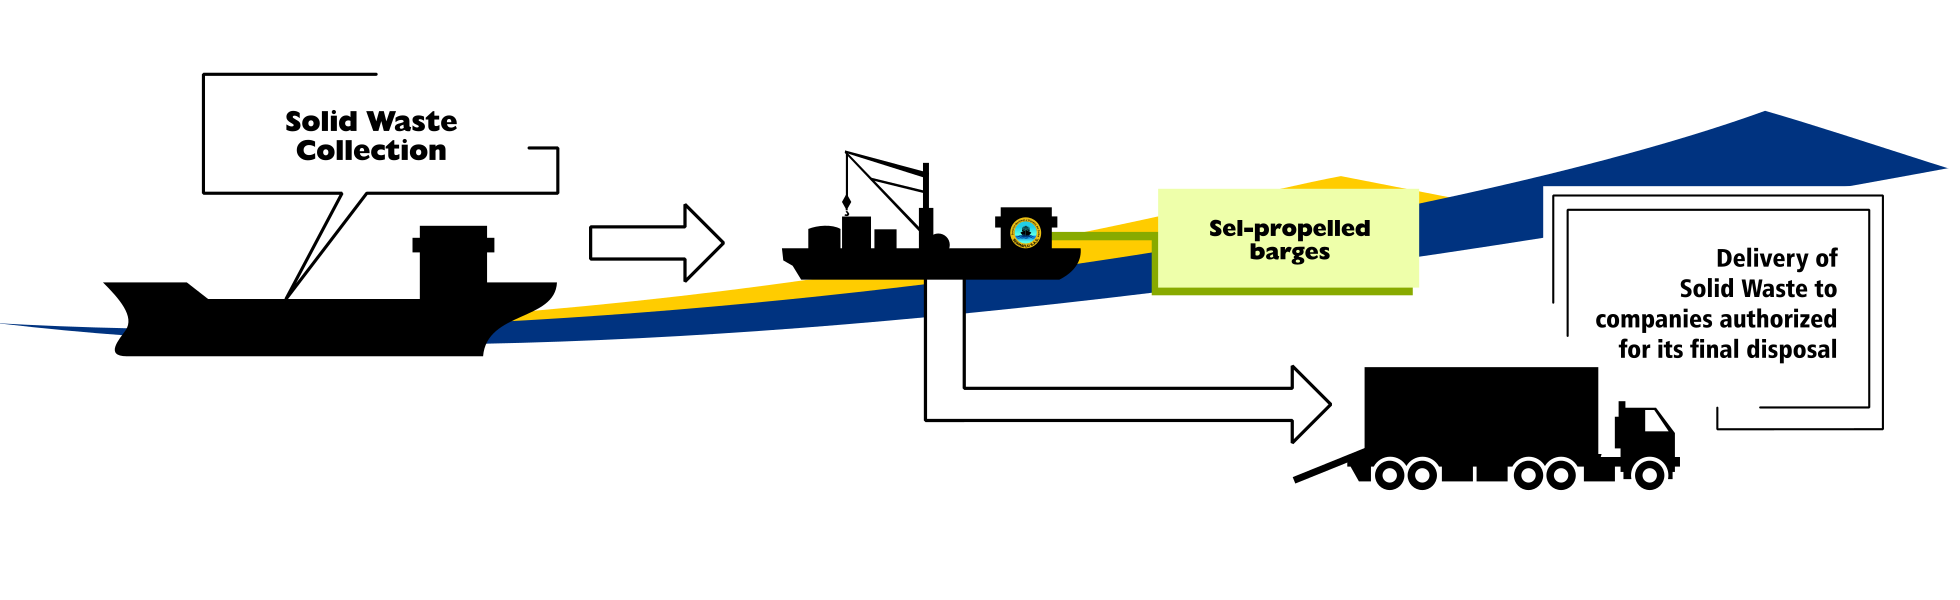 sermaflu ships solid waste collection service